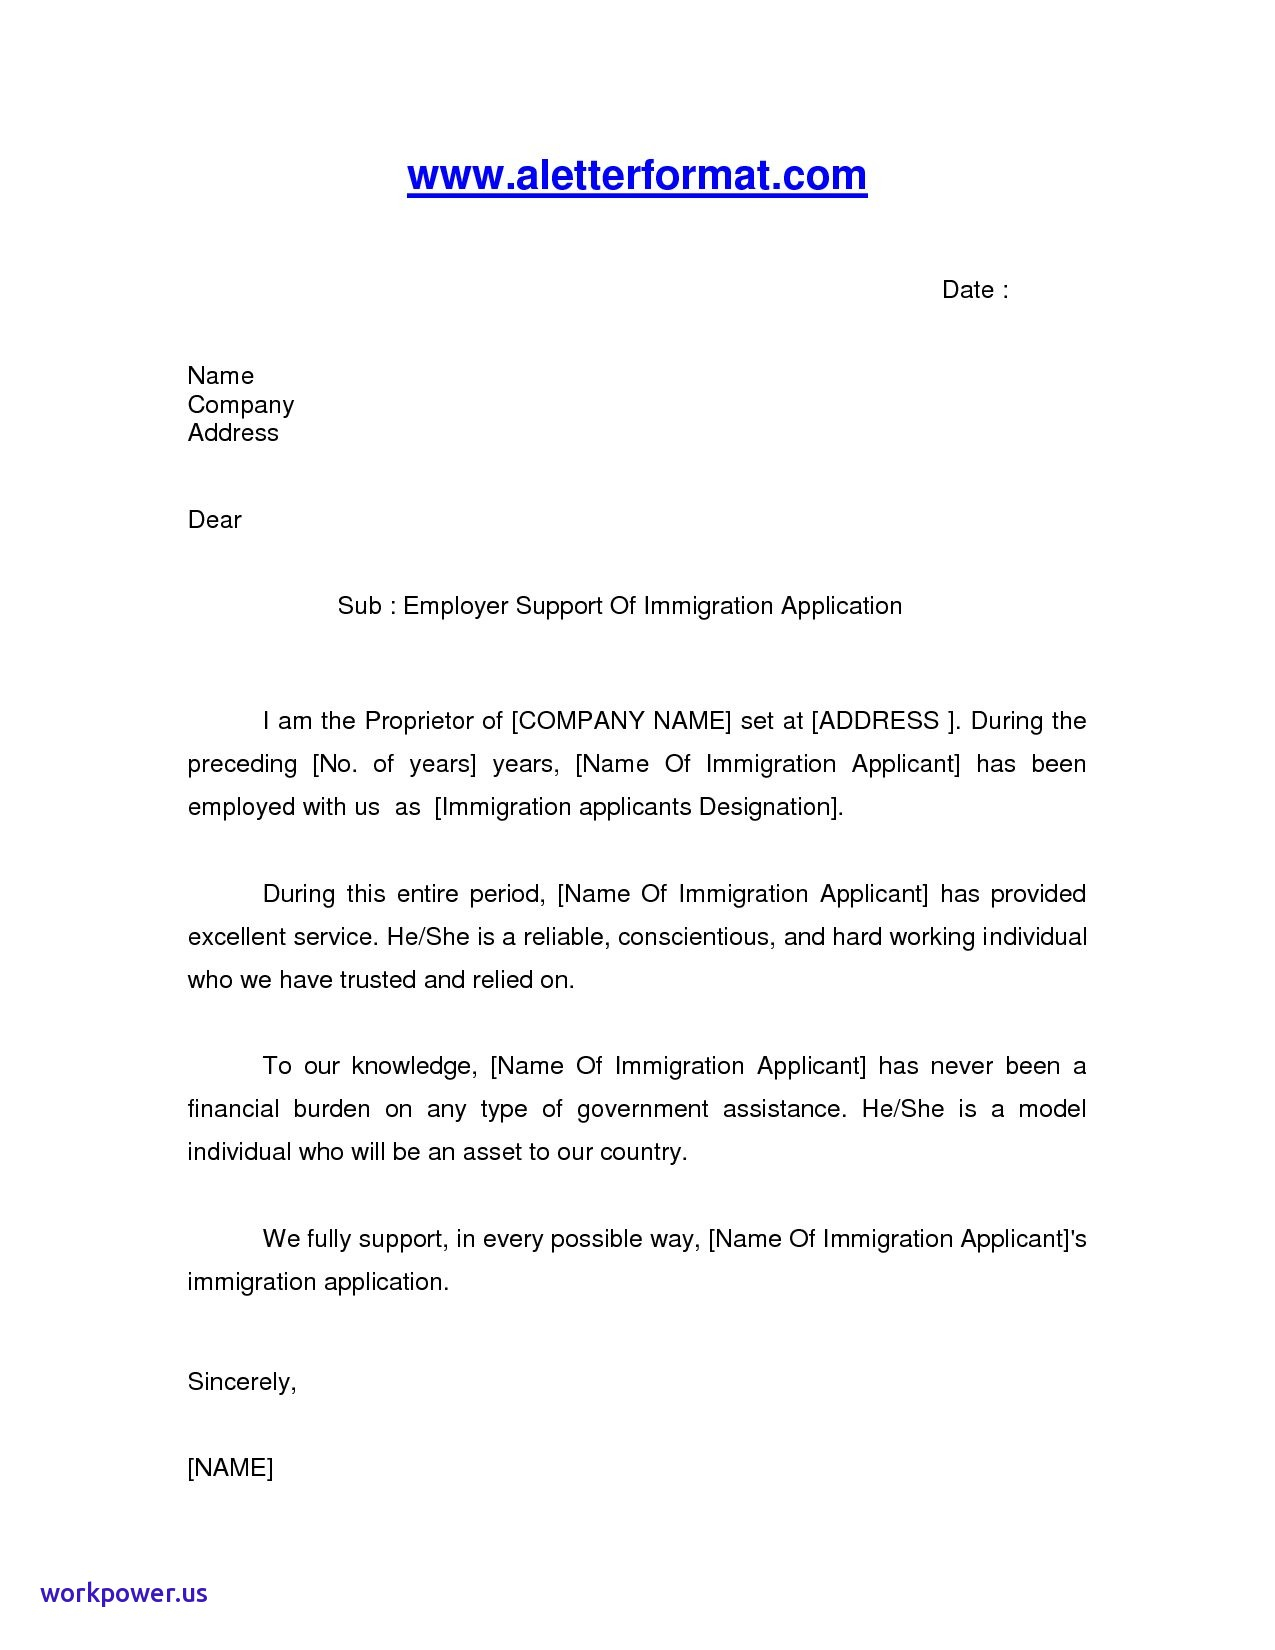 Immigration Reference Letter Template - Sample Immigration Reference Letter for A Friend